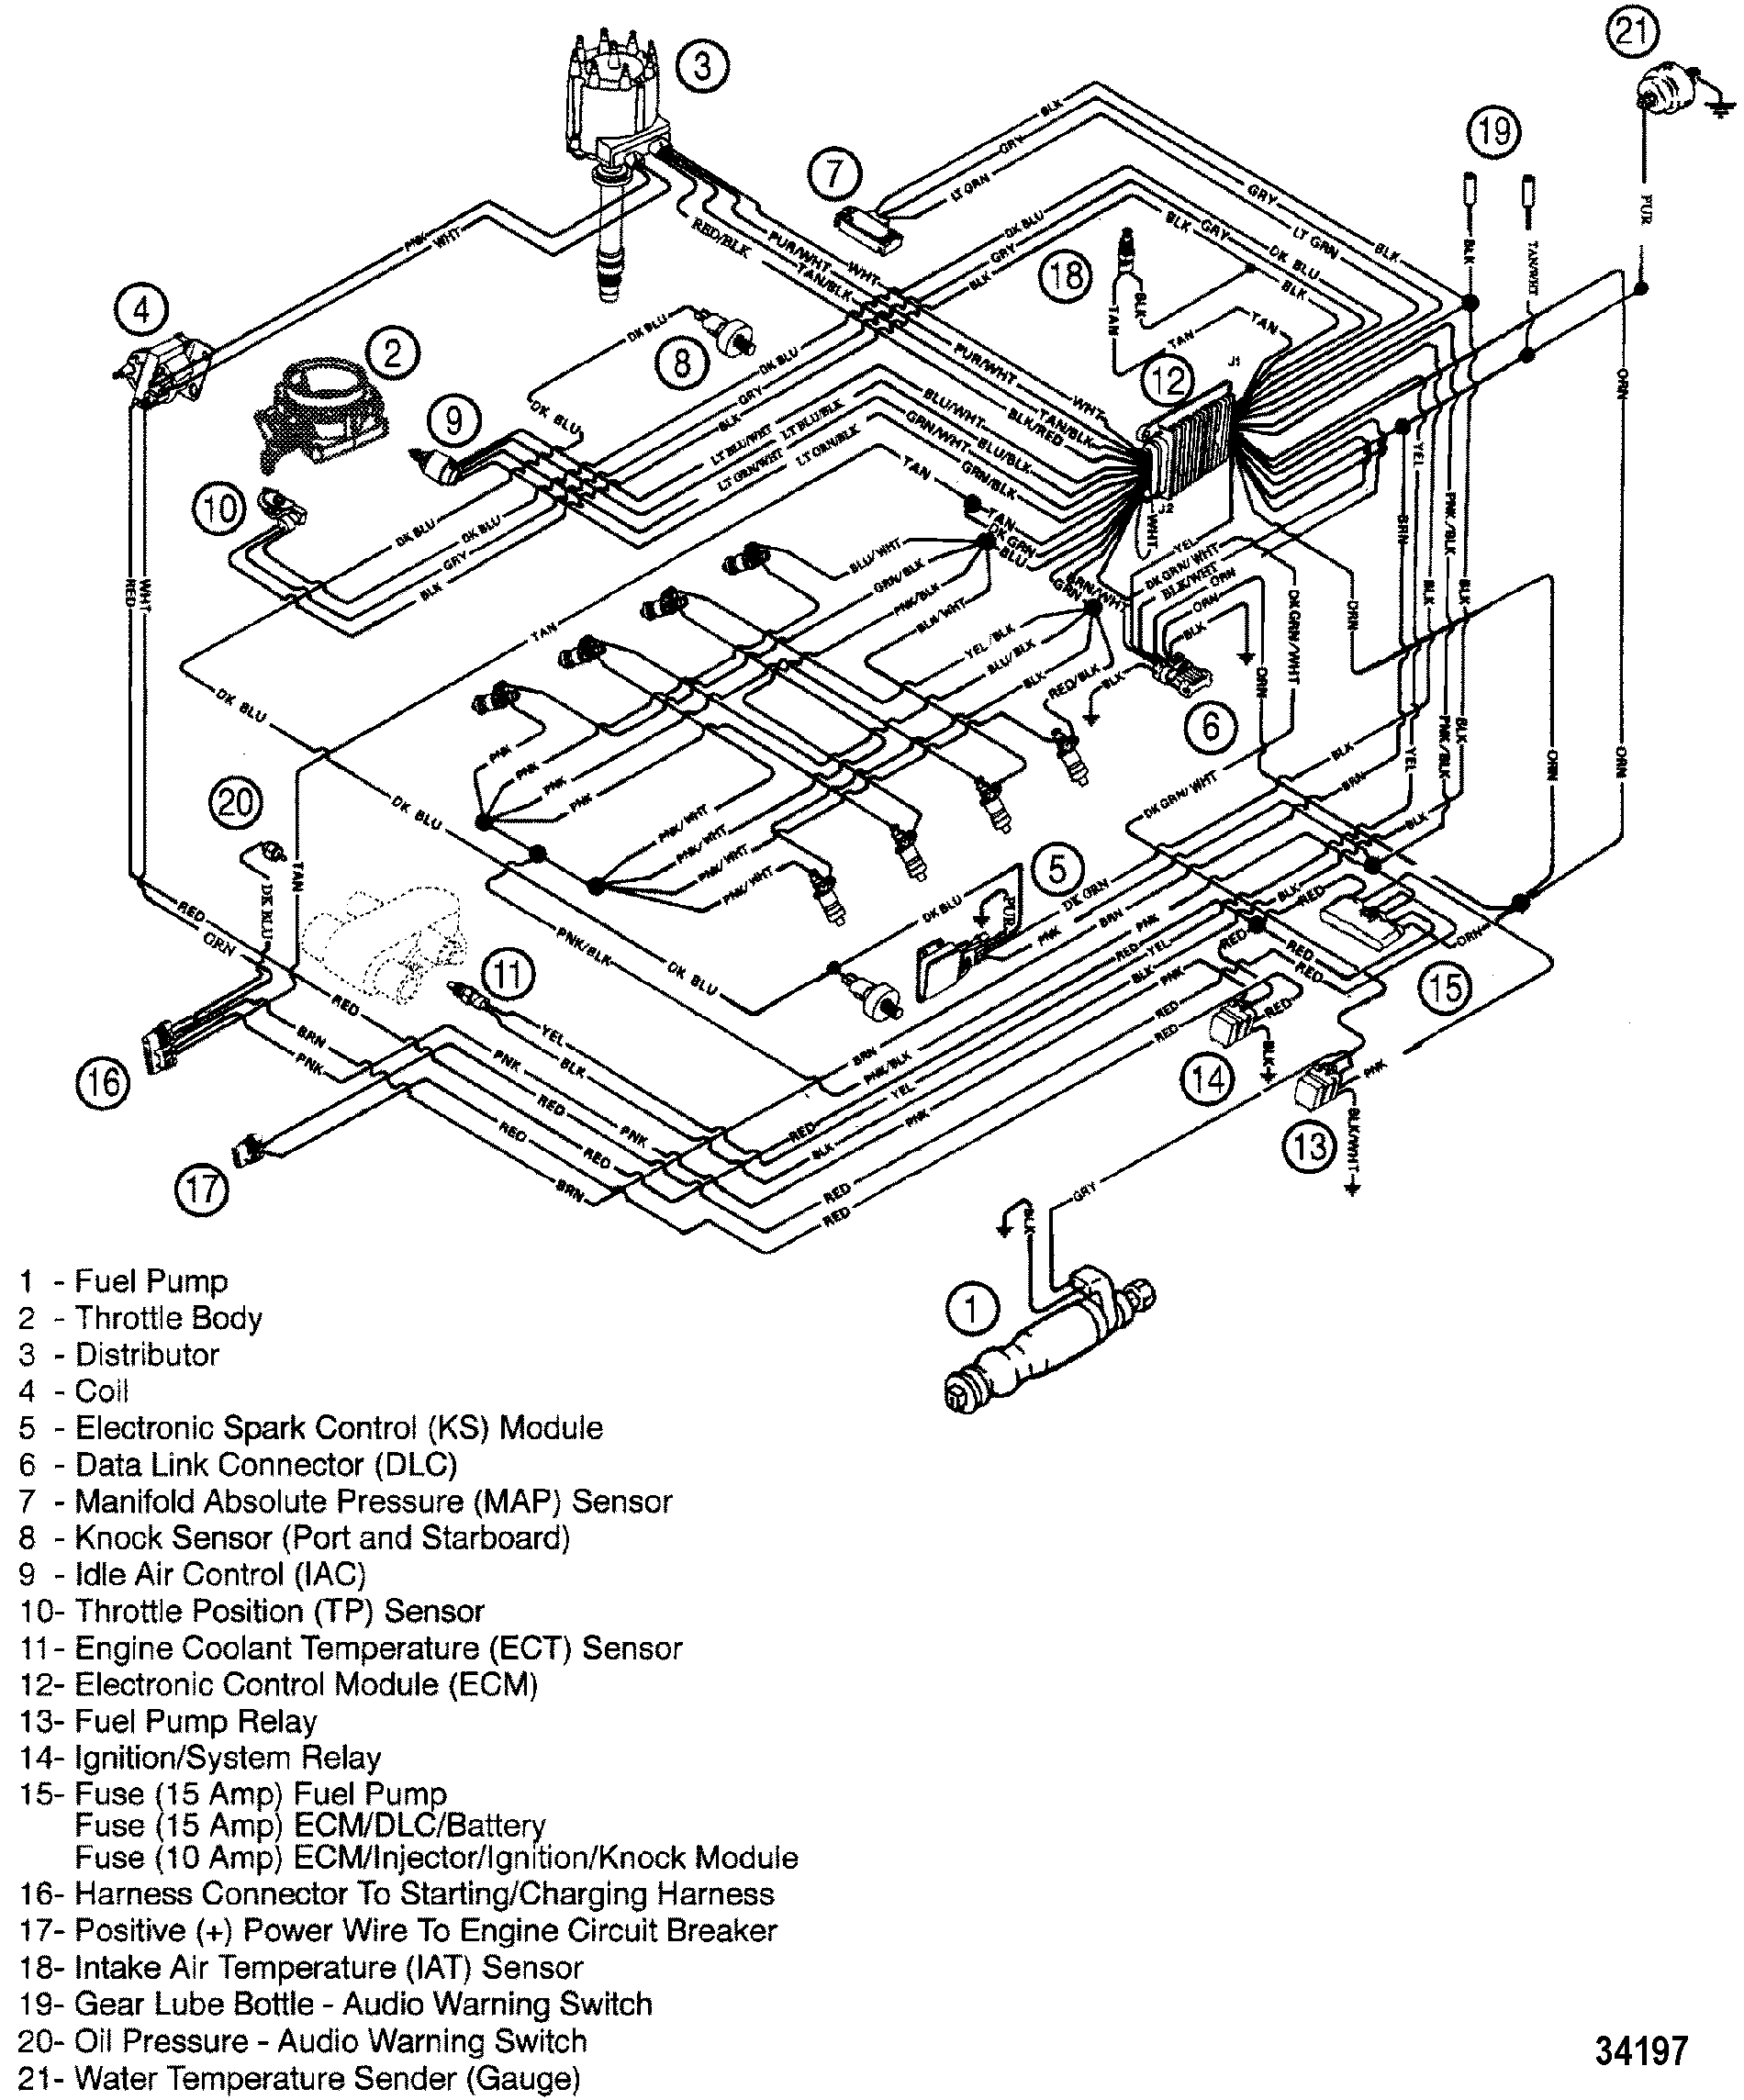 350 Mercruiser Magnum Wiring Diagram furthermore 350 Lt1 Engine Diagram as well 91249 C  pressor Replacement Tips besides Wiring Active Pickup Set together with 74 Jeep Cj5 Wiring Diagram. on lt1 wiring harness diagram